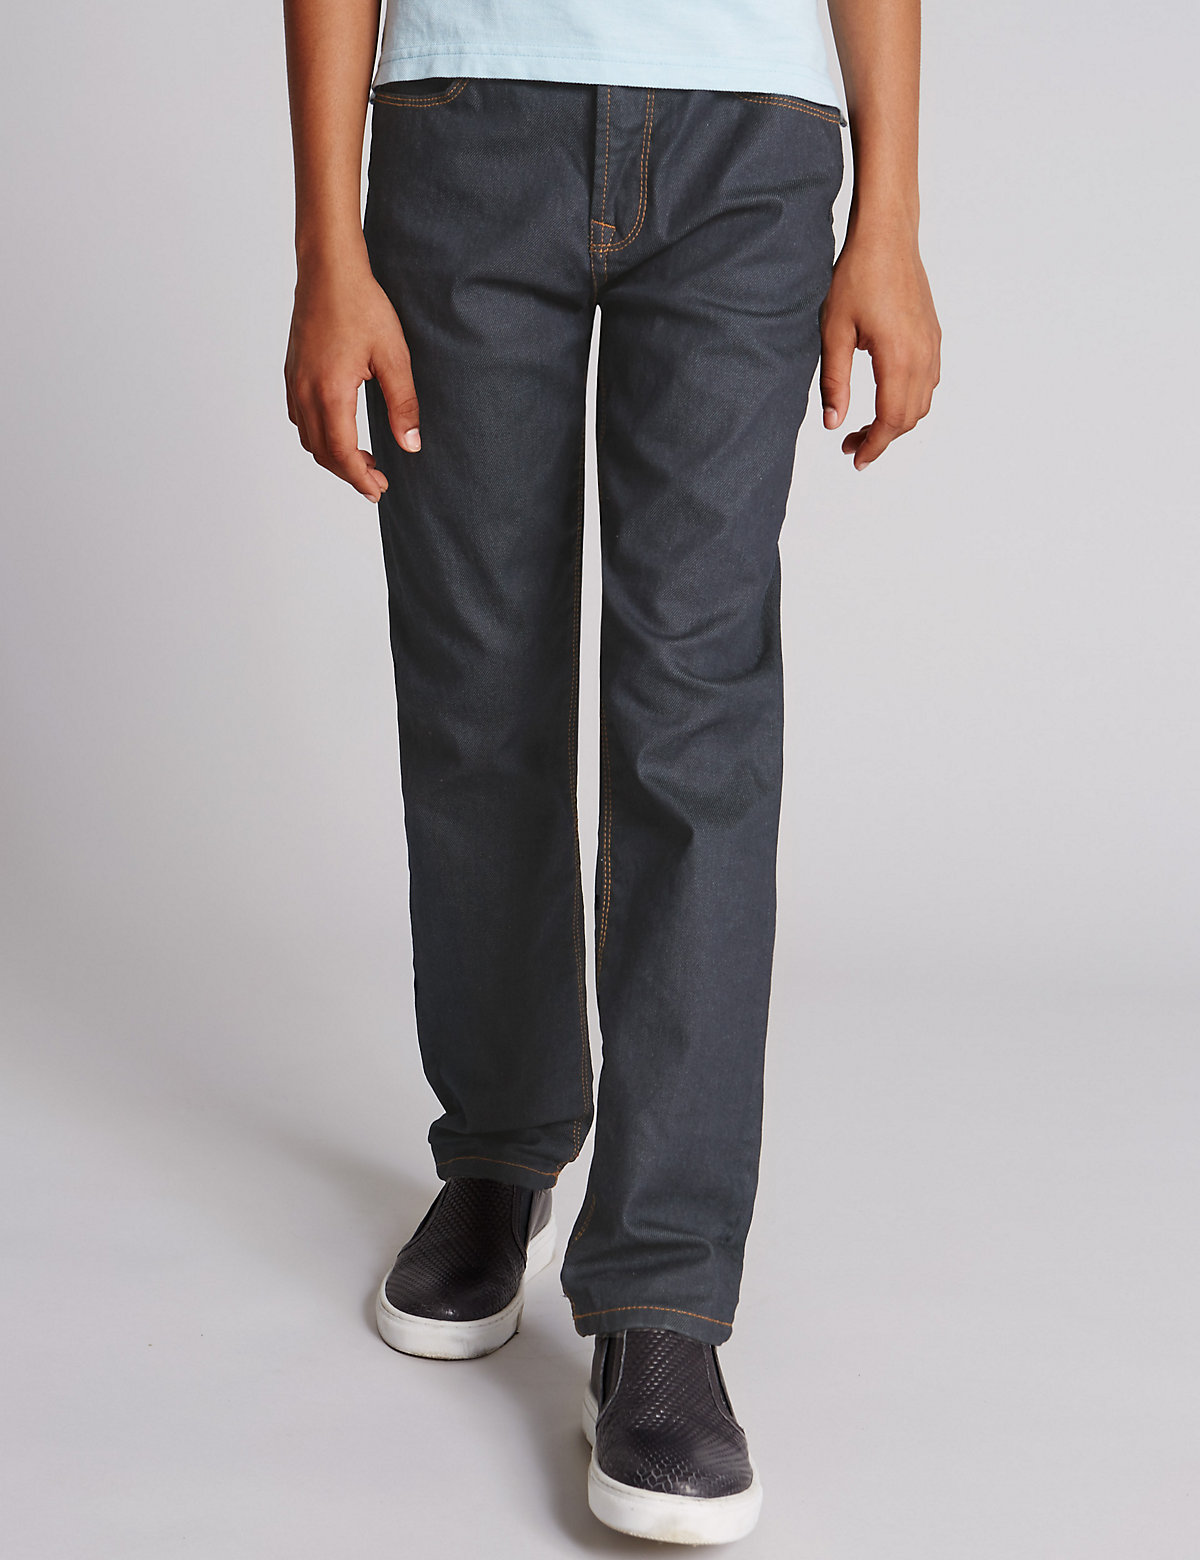 Autograph Cotton with Stretch Regular Jeans with StayNEW (5-14 Years)